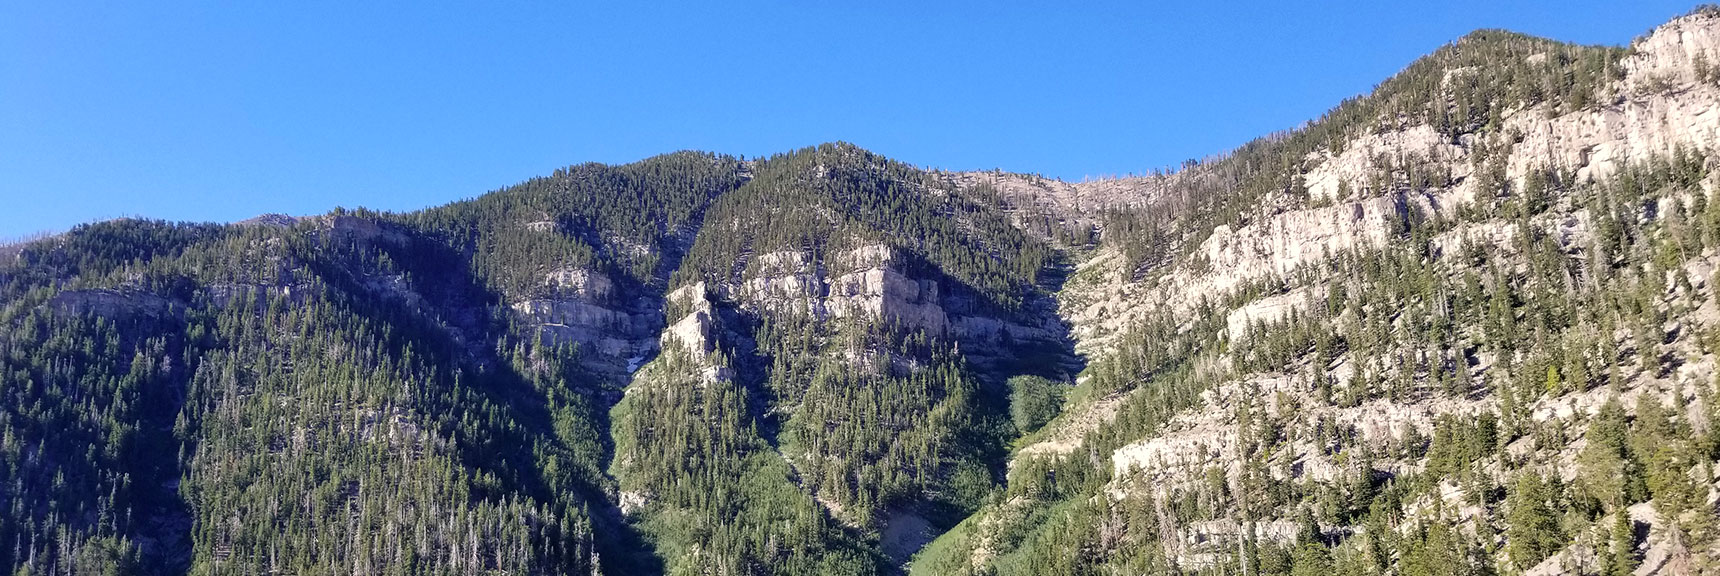 View of of Potential South Kyle Canyon Ridge Approaches from Cathedral Rock Summit, Mt. Charleston Wilderness, Nevada